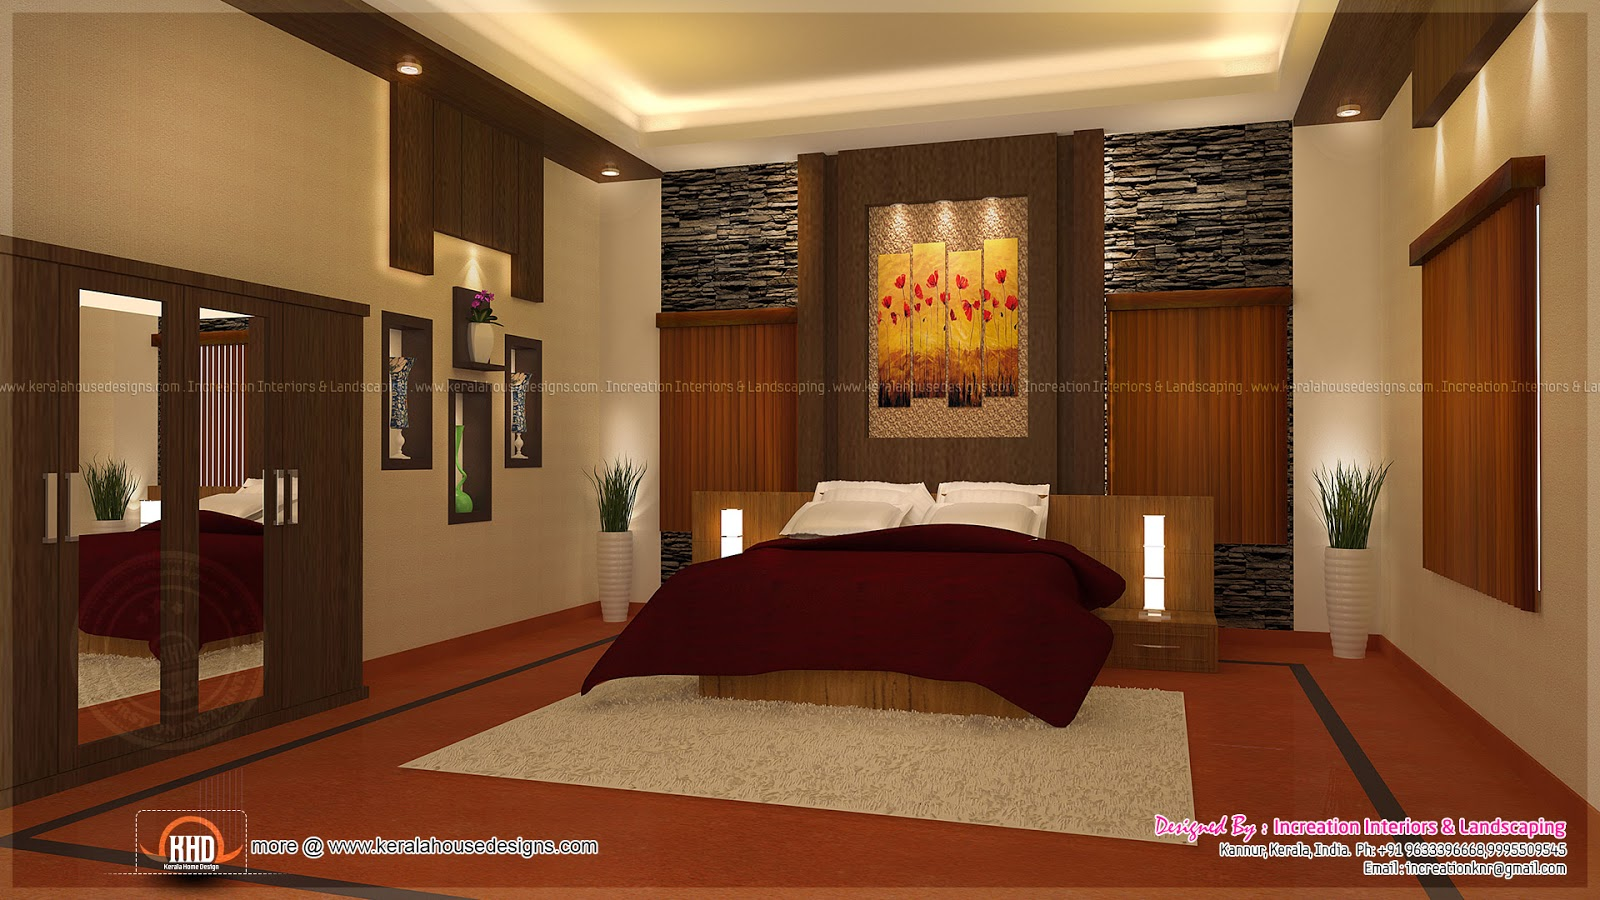 House interior ideas in 3d rendering home kerala plans for Interior design plans for houses